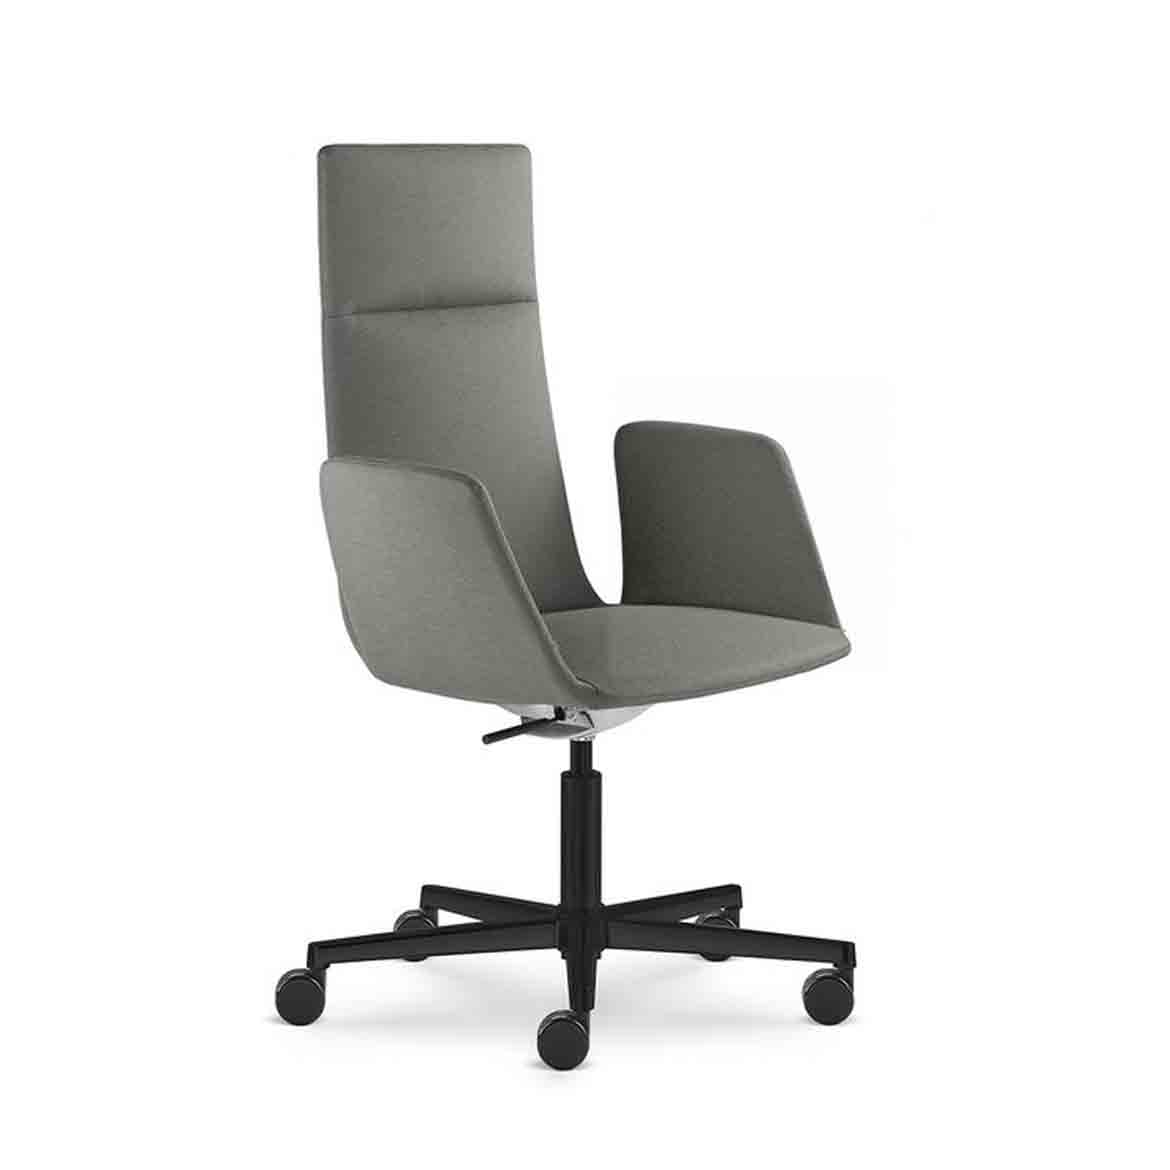 Office armchair with medium size backrest and height adjustable and swivel, relaxing rocking mechanism. Black painted aluminium base, fixed upholstered armrests, large castors.